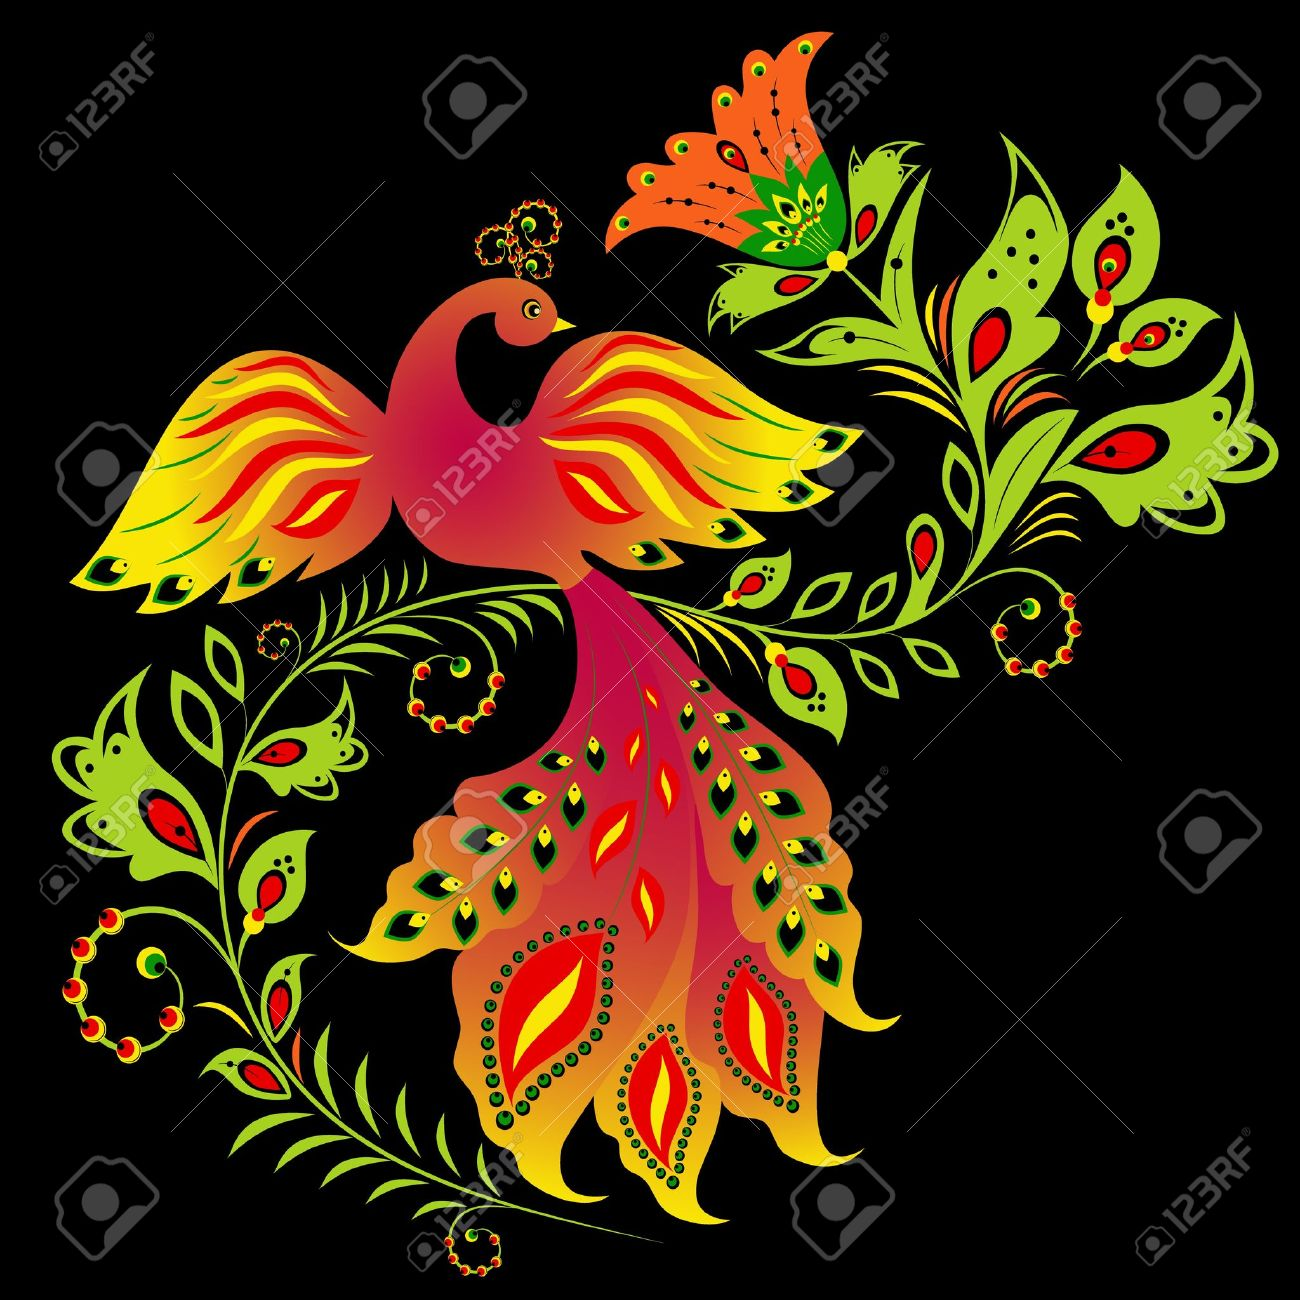 Illustration of traditional Russian ornament Stock Vector - 11181580